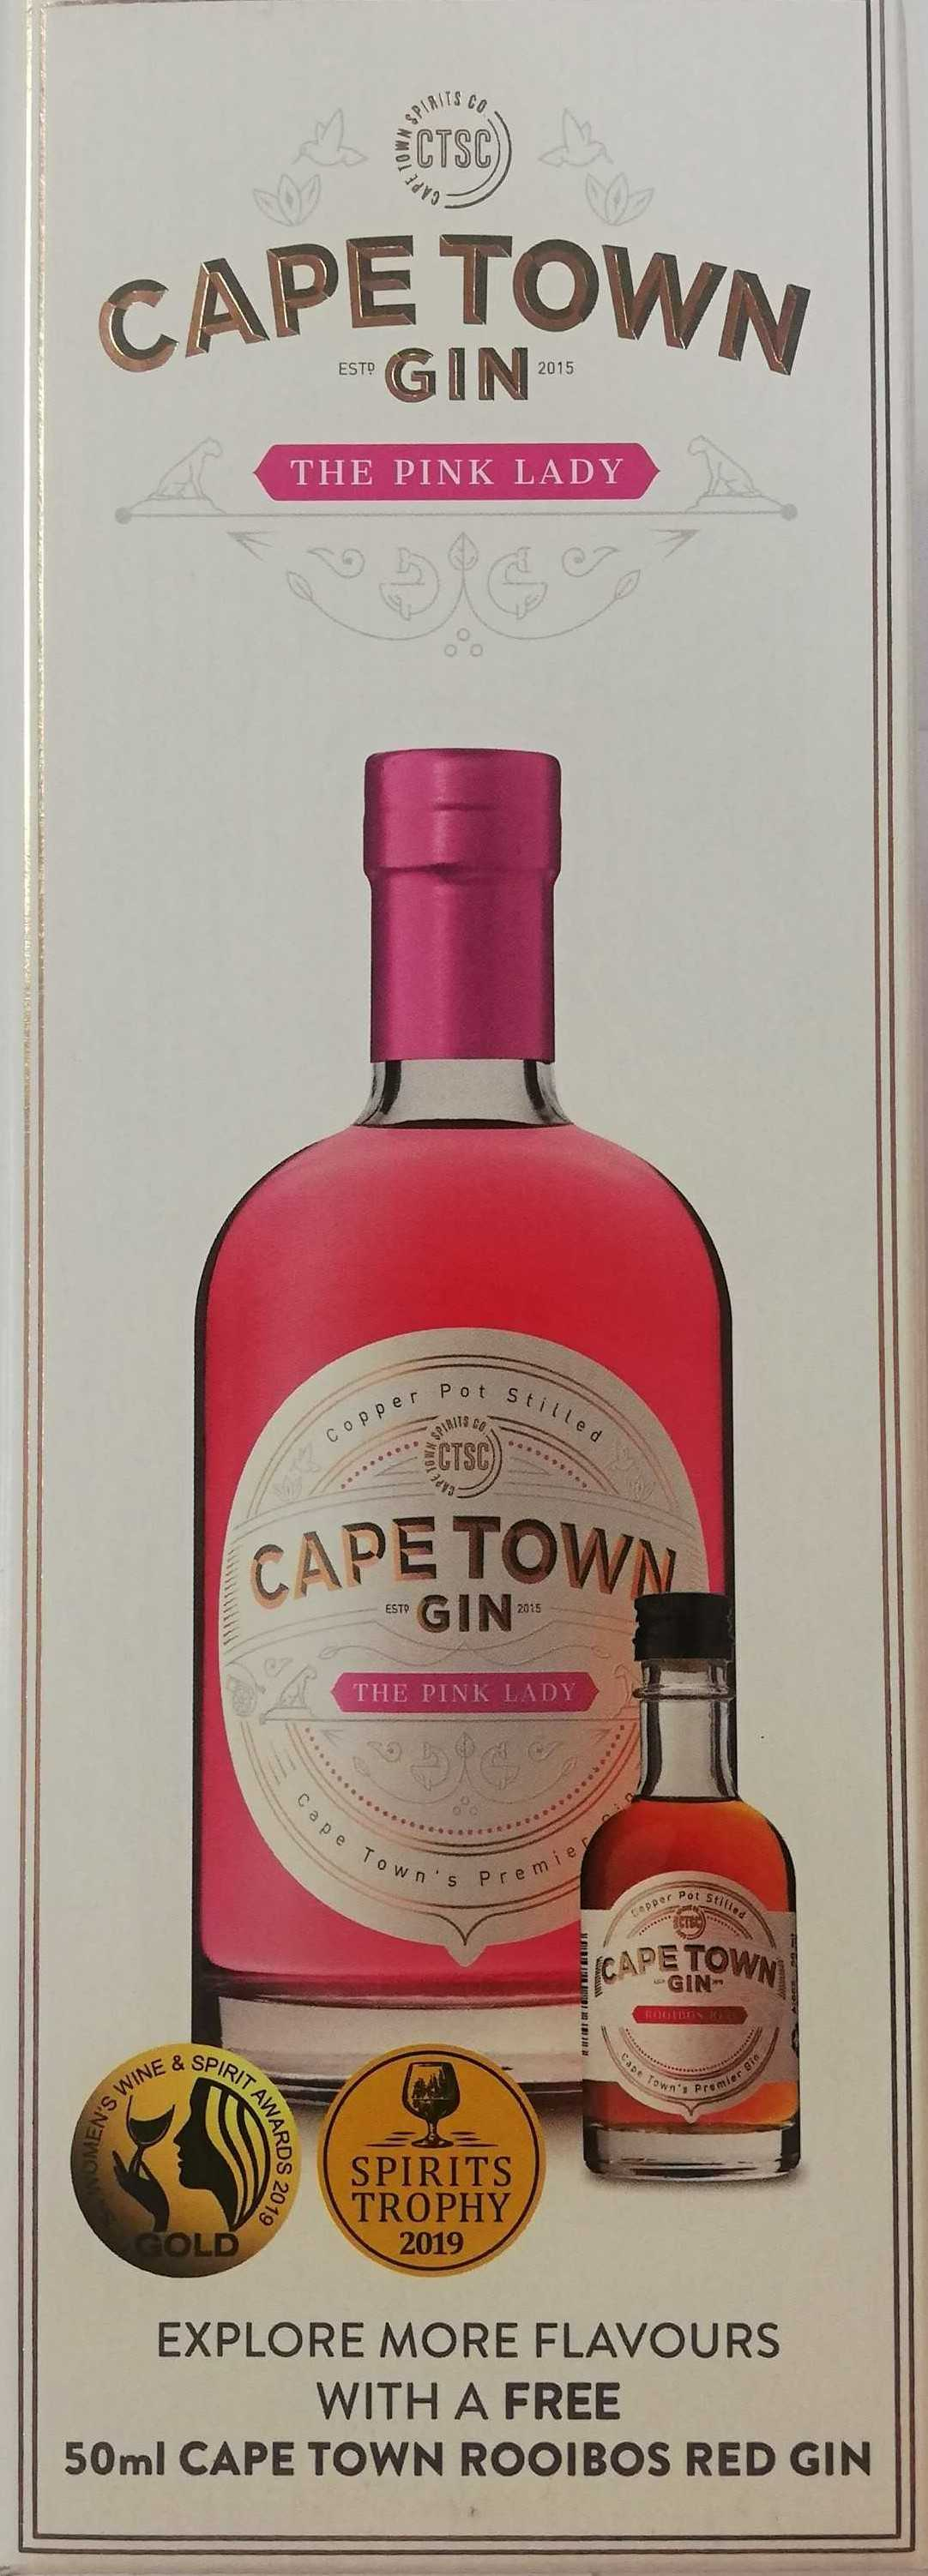 CAPE TOWN THE PINK LADY GIFT 750ML